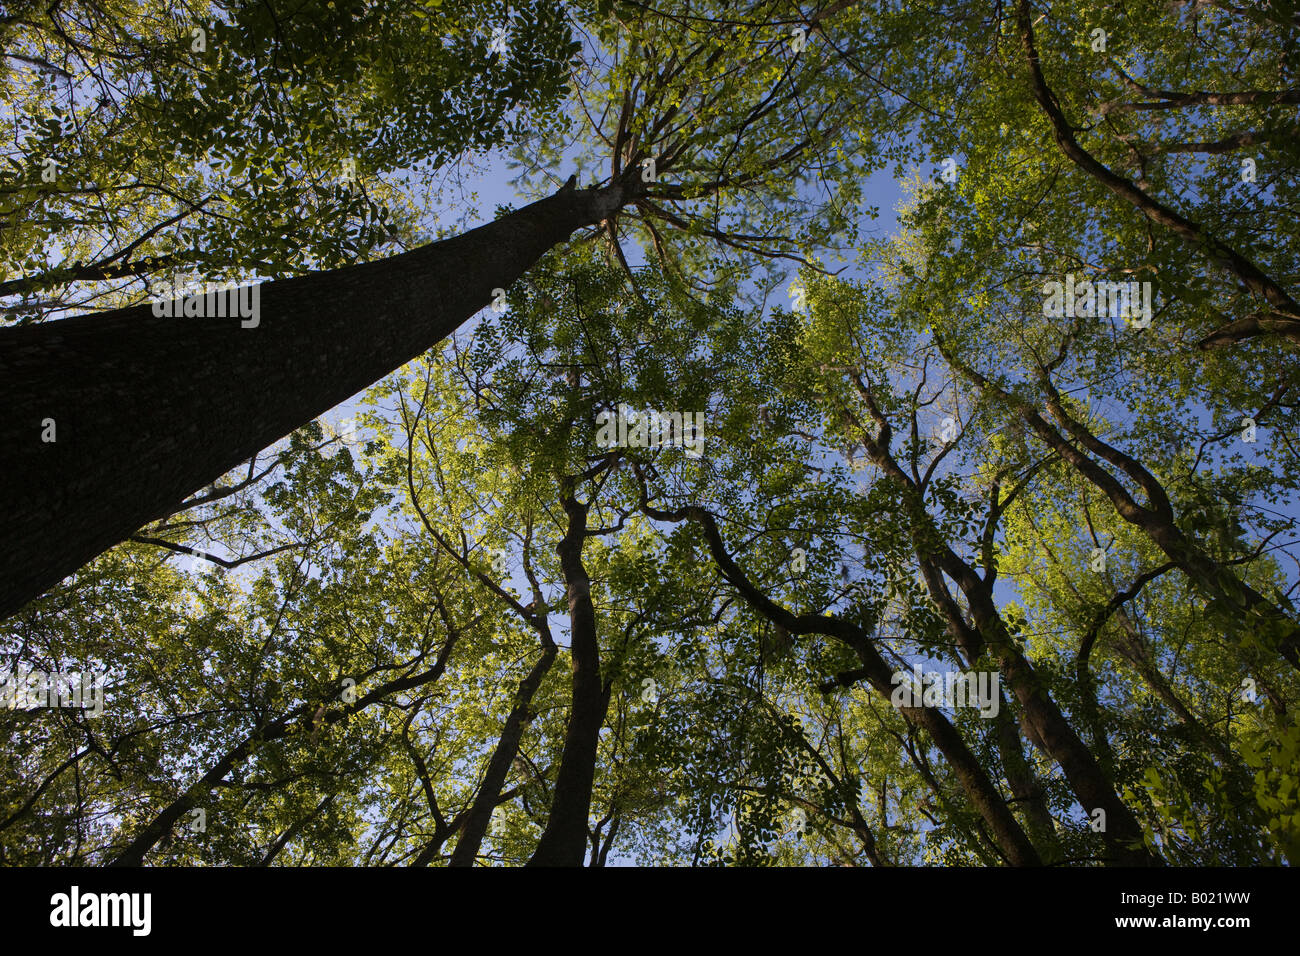 The forest canopy created by bald cypress and tupelo trees in Congaree National Park near Columbia South Carolina - Stock Image